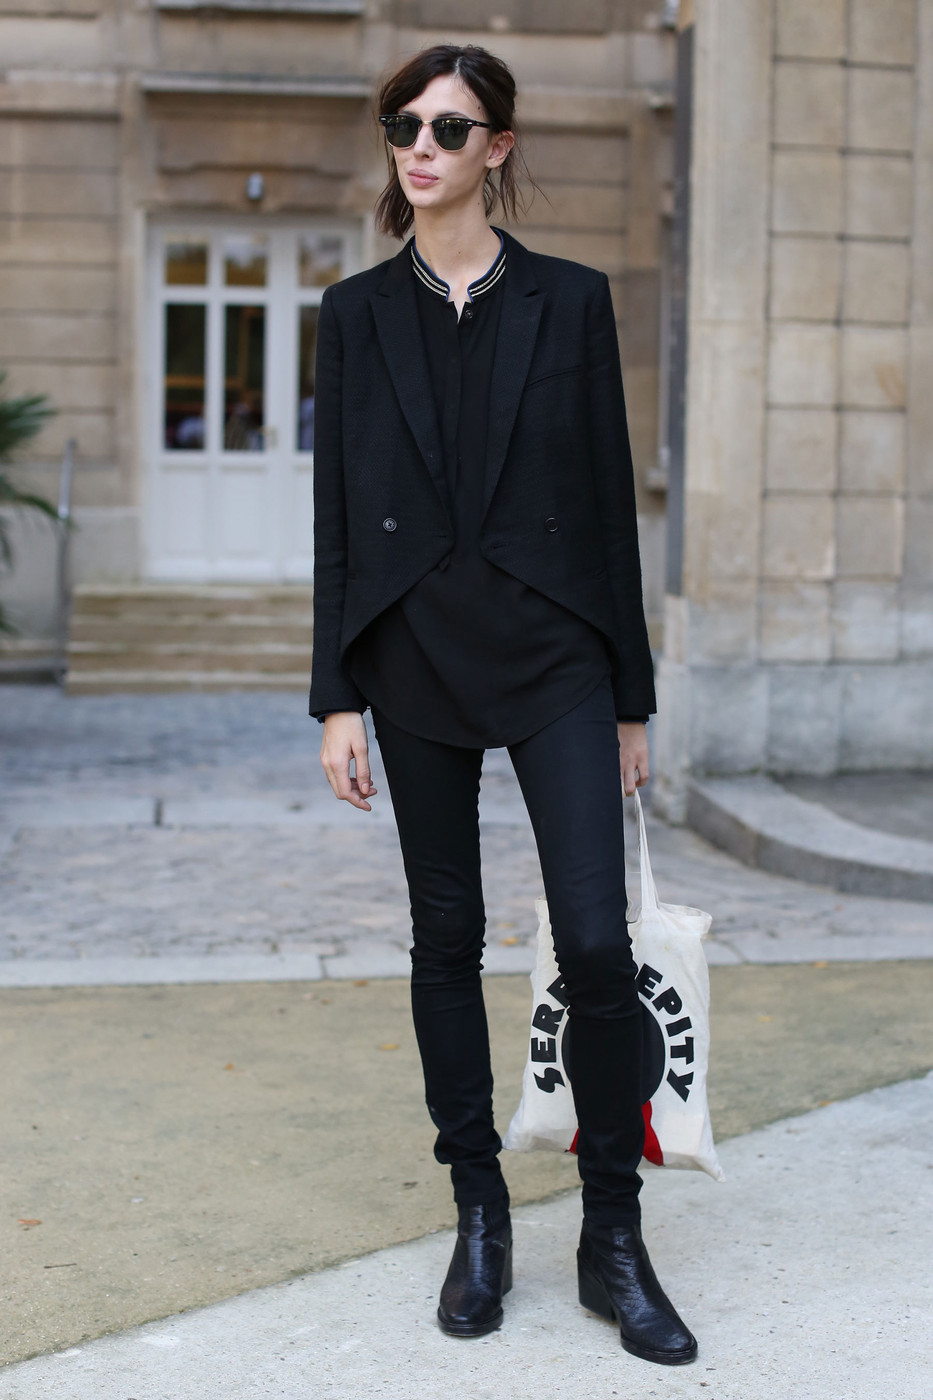 PFW Model Street Style Ruby Aldridgeu0026#39;s All-Black Outfit - The Front Row View